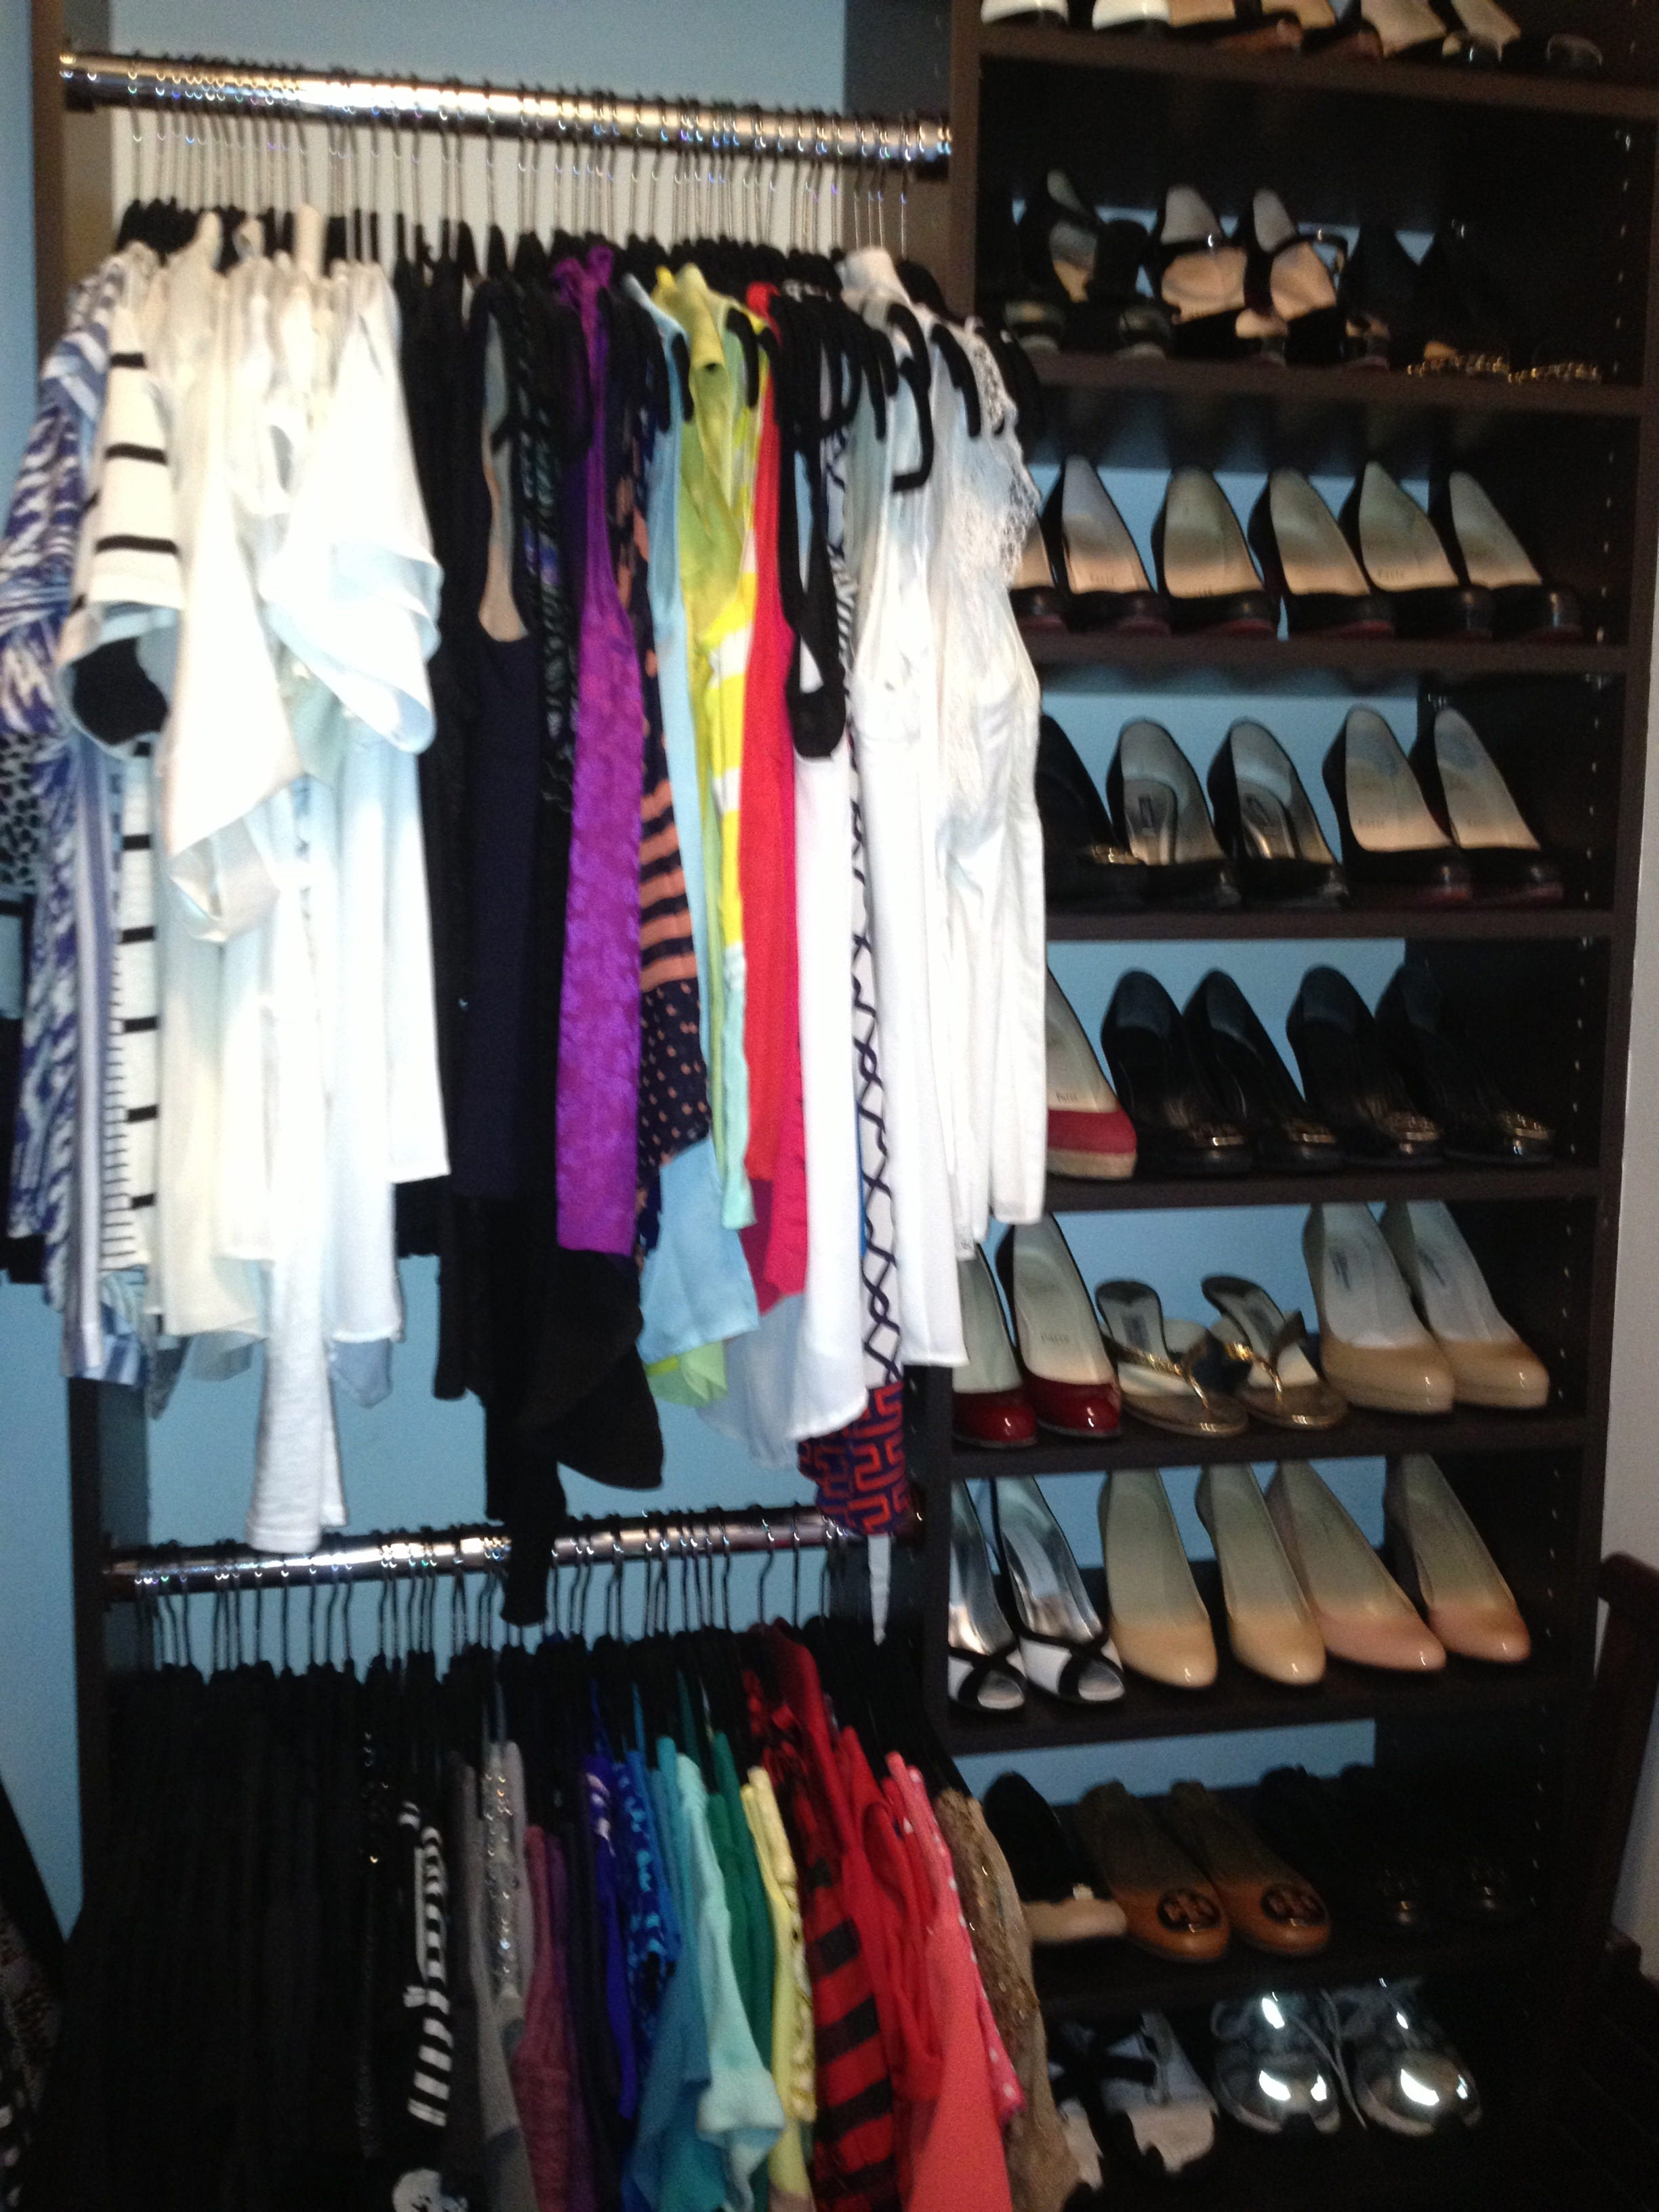 neat, neat method, neat south florida, professional organizer, organized closet, tips to organize a closet, closet